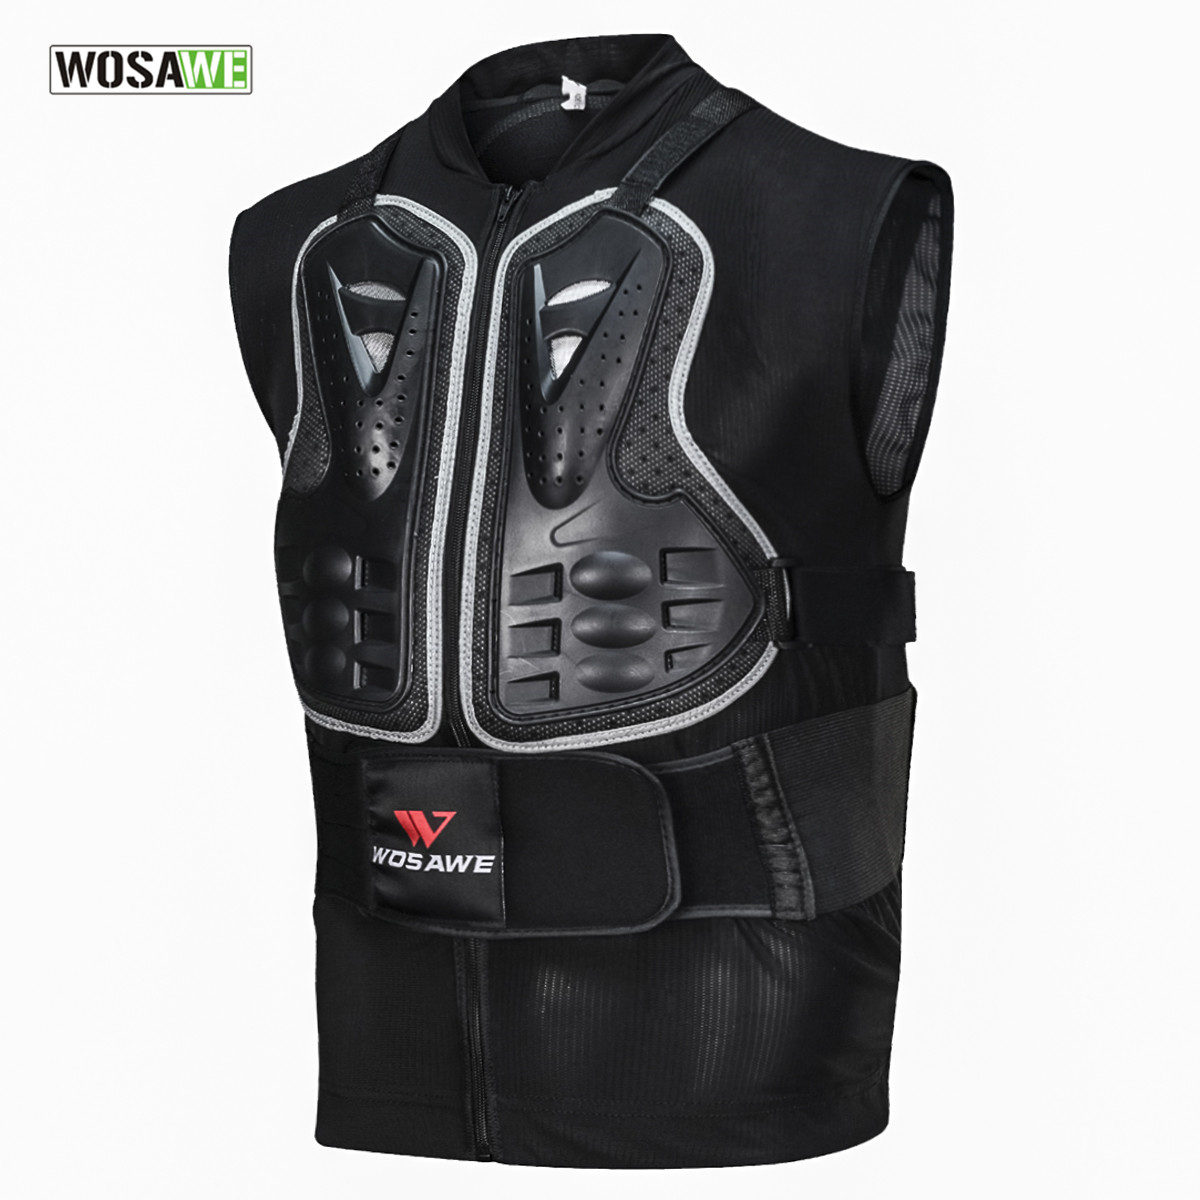 WOSAWE Motorcycle Armor Vest Motocross Off-Road Racing Chest Protector Cycling Ski Body Protective Skating Snowboarding JacketsWOSAWE Motorcycle Armor Vest Motocross Off-Road Racing Chest Protector Cycling Ski Body Protective Skating Snowboarding Jackets